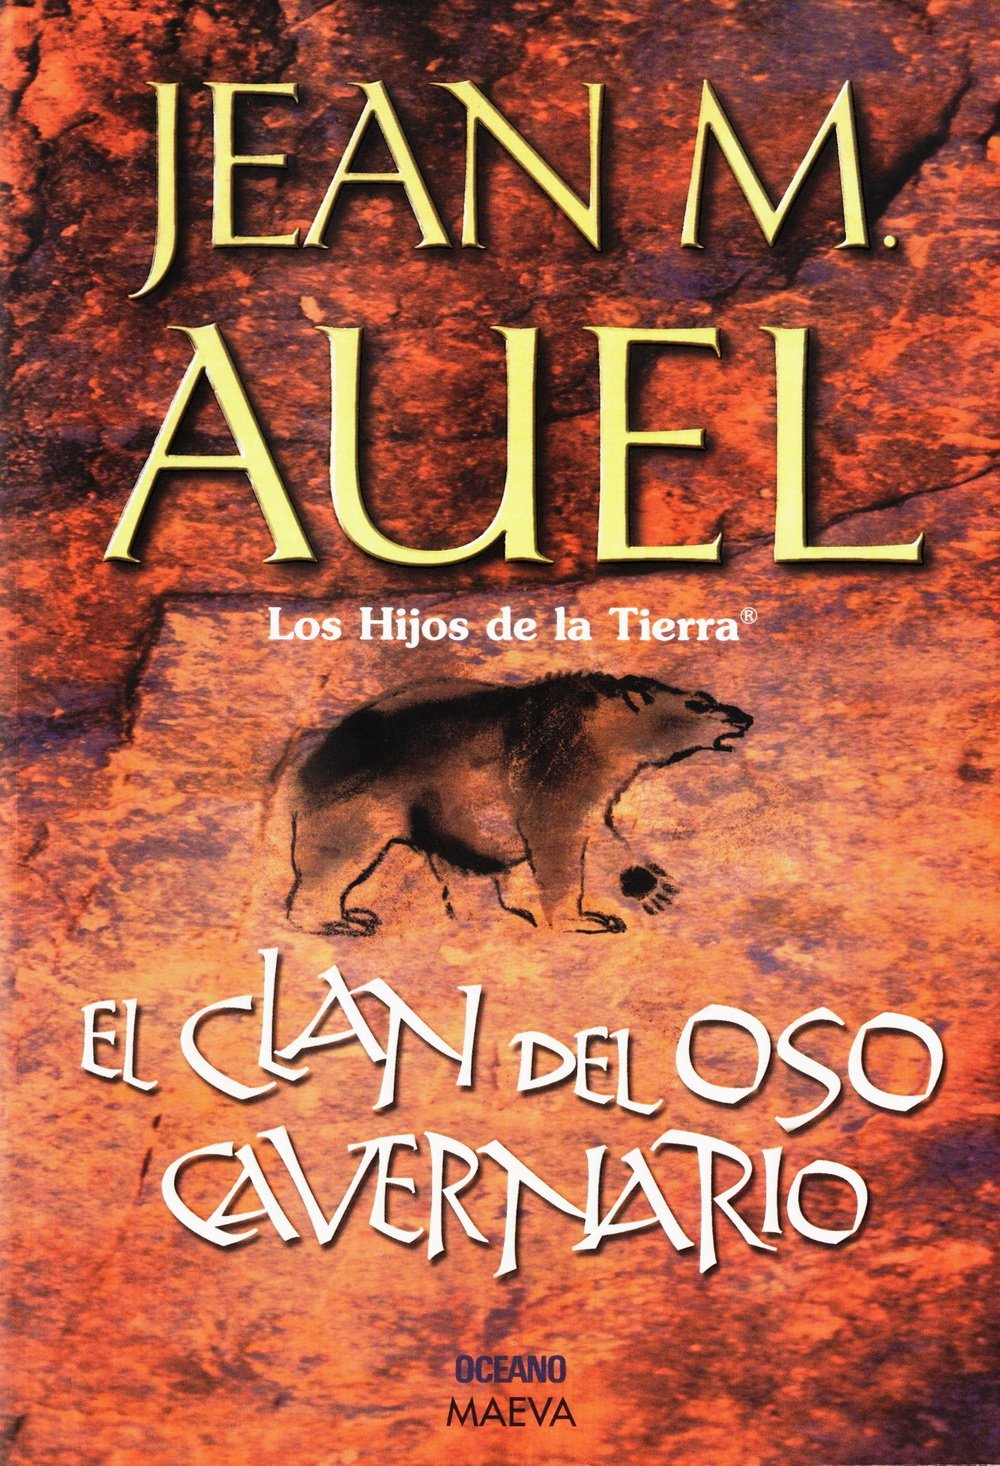 El Clan Del Oso Cavernario / The Clan Of The Cave Bear Hijos De La Tierra /  Earth's Children: Amazon.es: Jean M. Auel: Libros